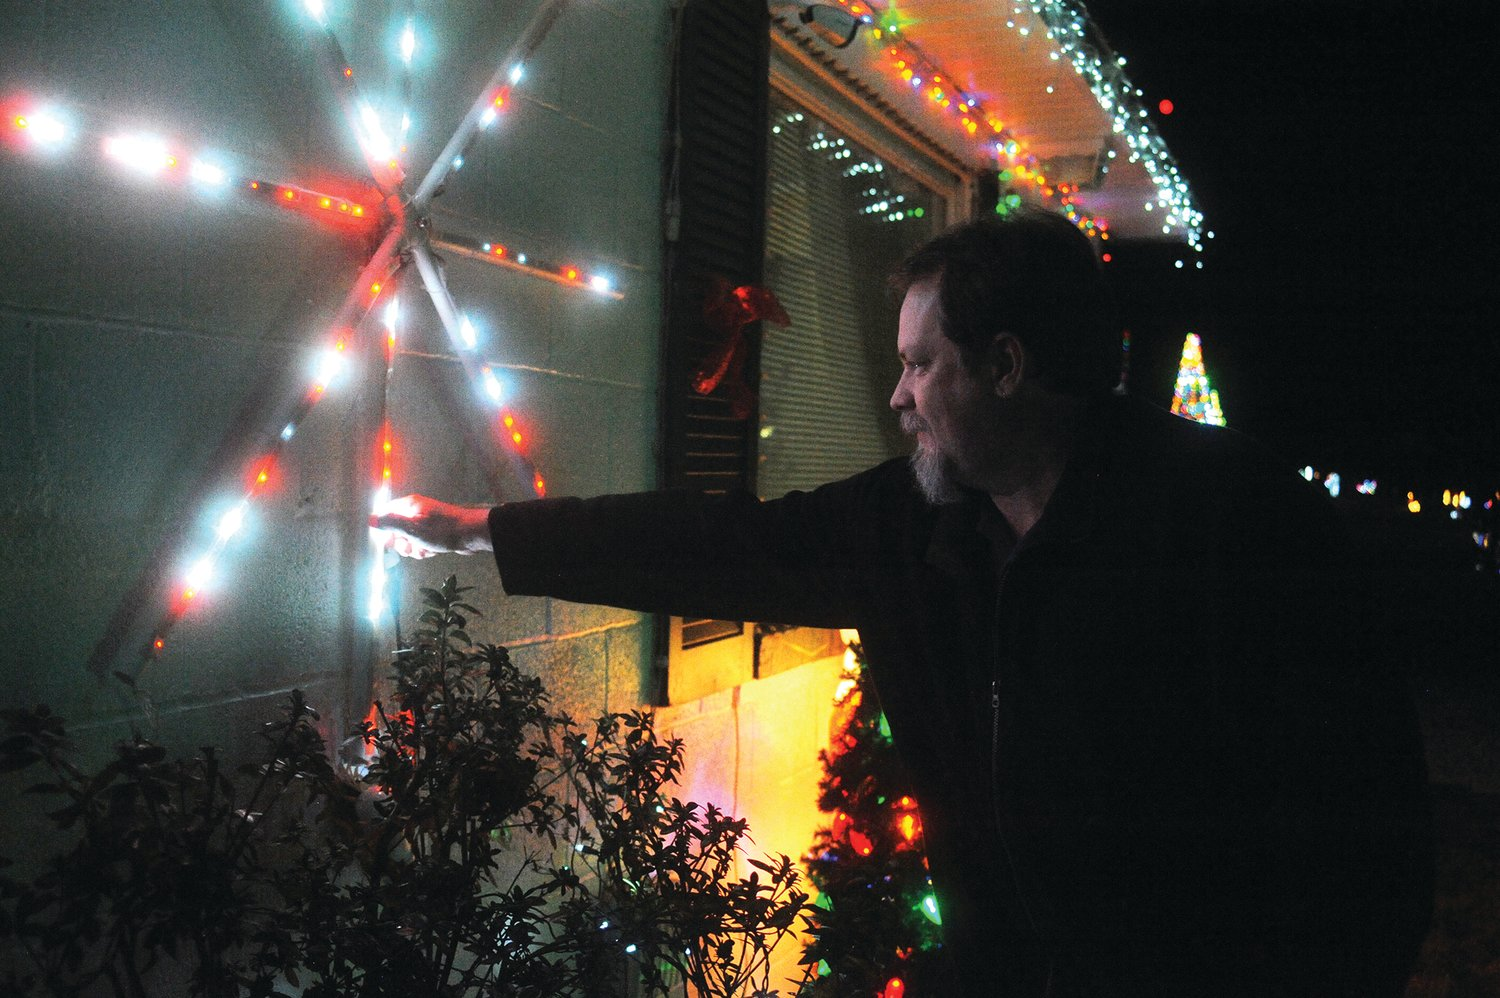 Scott Mace works in the information technology field and uses his knowledge to control the lighting display used at his residence each Christmas season. This lighting star was out of adjustment, and required a nudge to correct the problem.